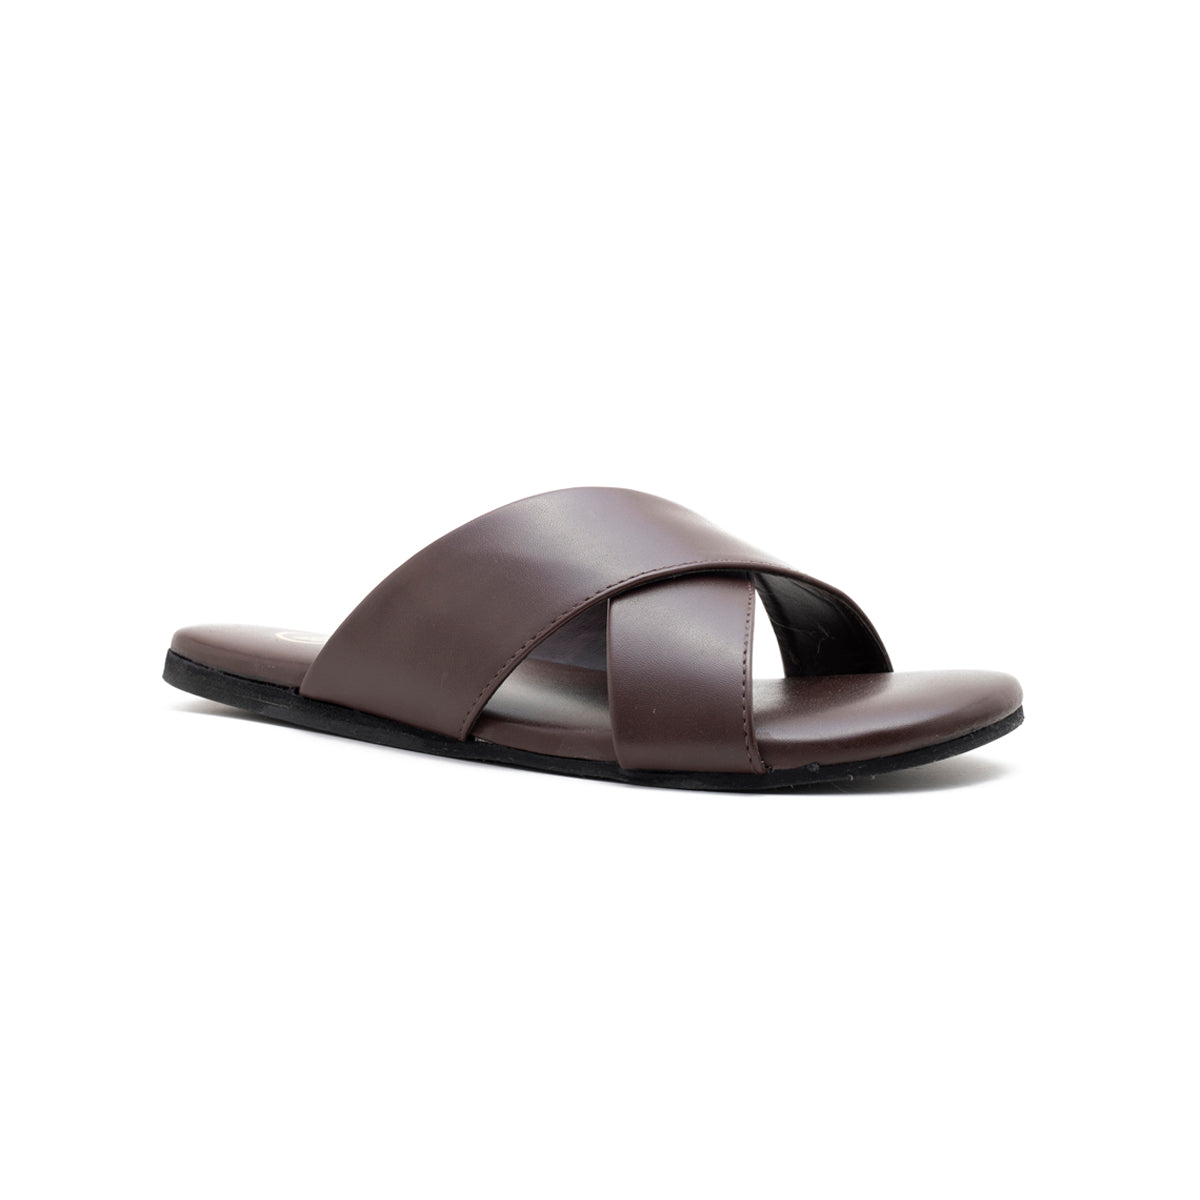 44944ec7ed56d Voss Cross Strap Flipflop - Brown - MONKSTORY